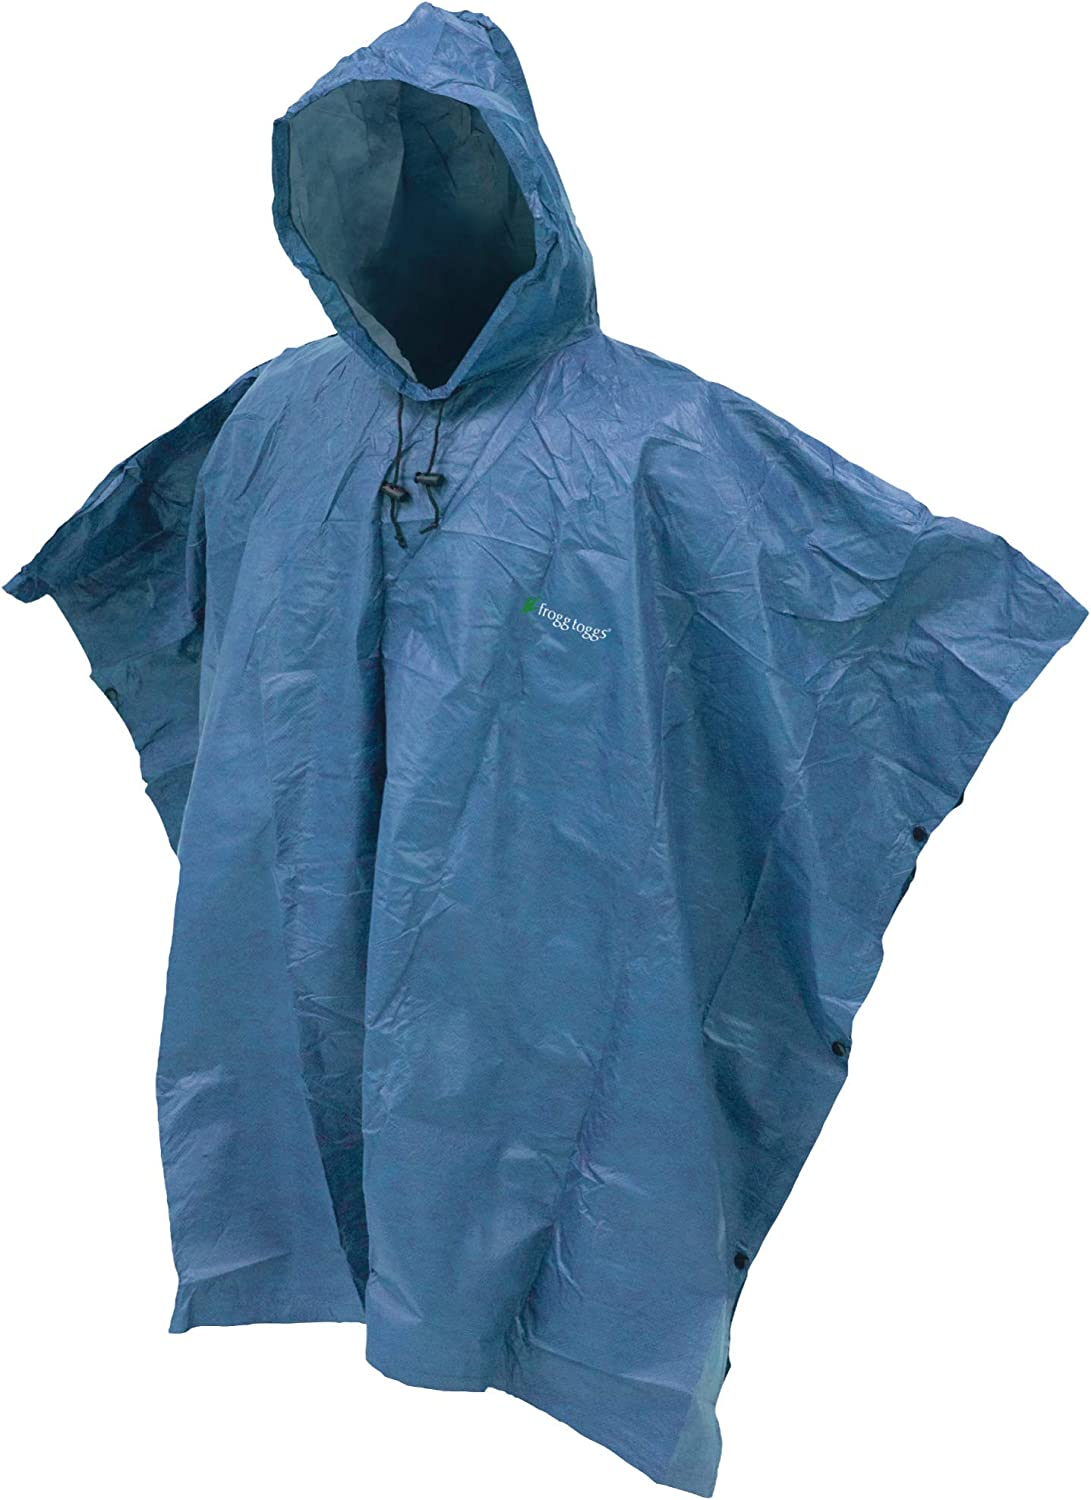 One Size Carbon Black Frogg Togg Ultra-lite2 Waterproof Breathable Rain Poncho